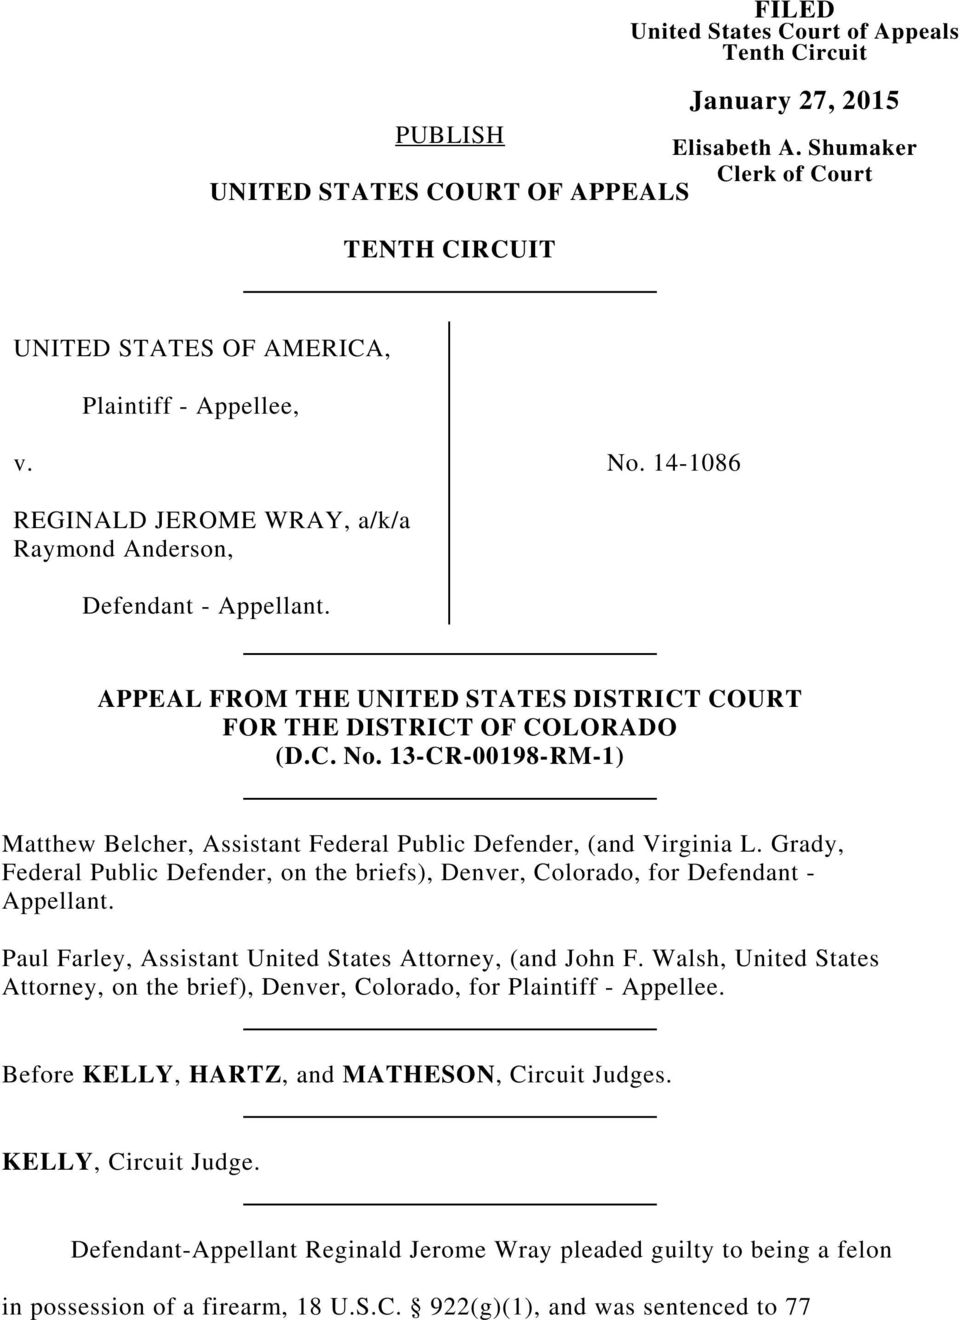 APPEAL FROM THE UNITED STATES DISTRICT COURT FOR THE DISTRICT OF COLORADO (D.C. No. 13-CR-00198-RM-1) Matthew Belcher, Assistant Federal Public Defender, (and Virginia L.